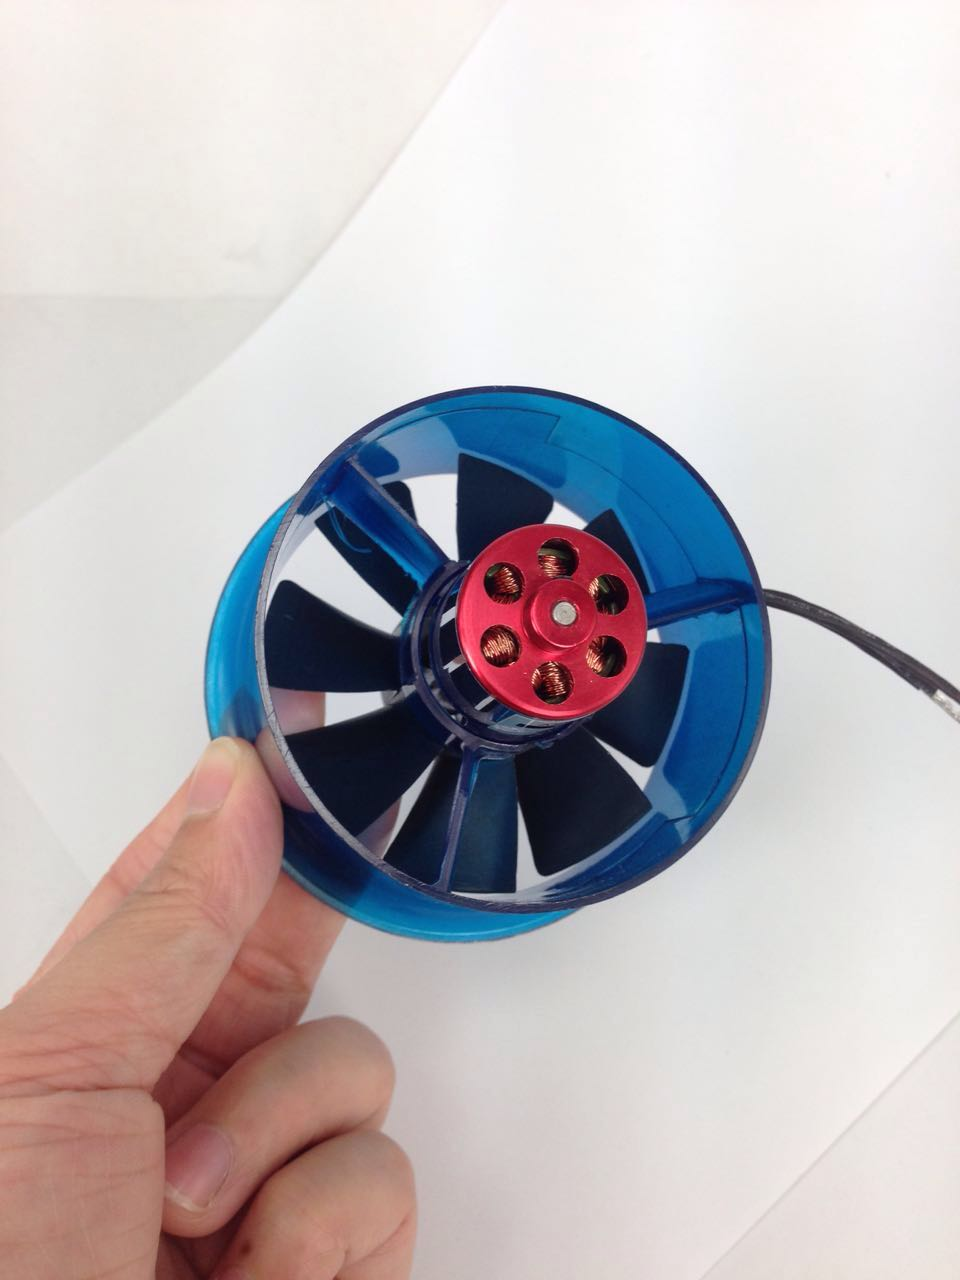 New HL6408 2830 4500KV Motor EDF 64mm Ducted Fan for RC Aircraft Airplane